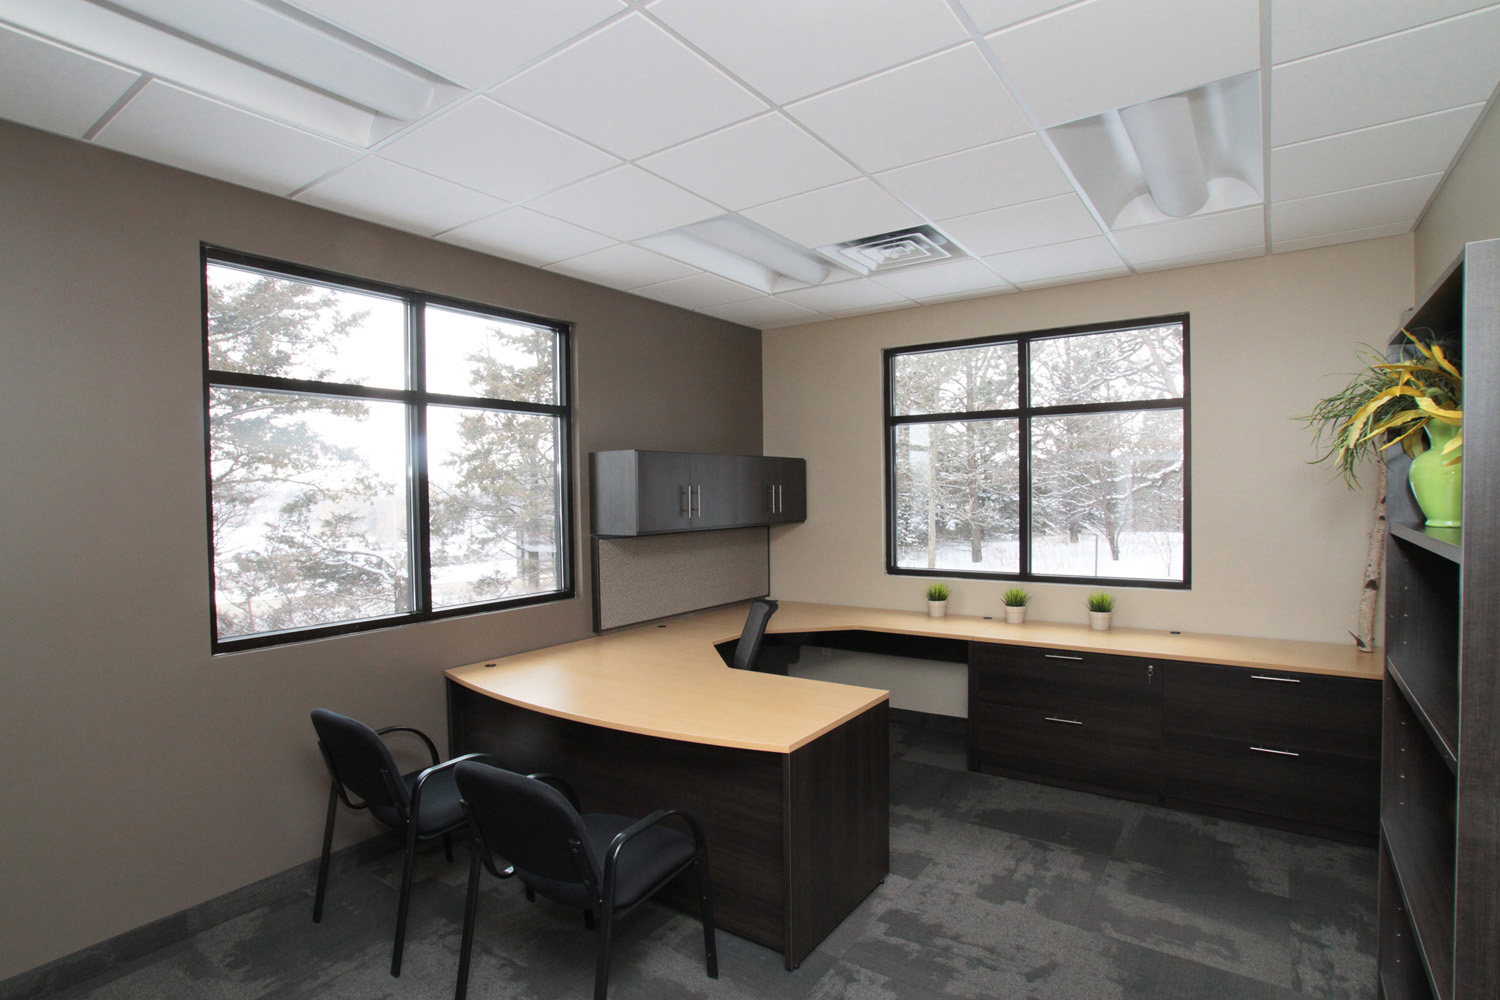 Office space design mankato new used office for Office design companies